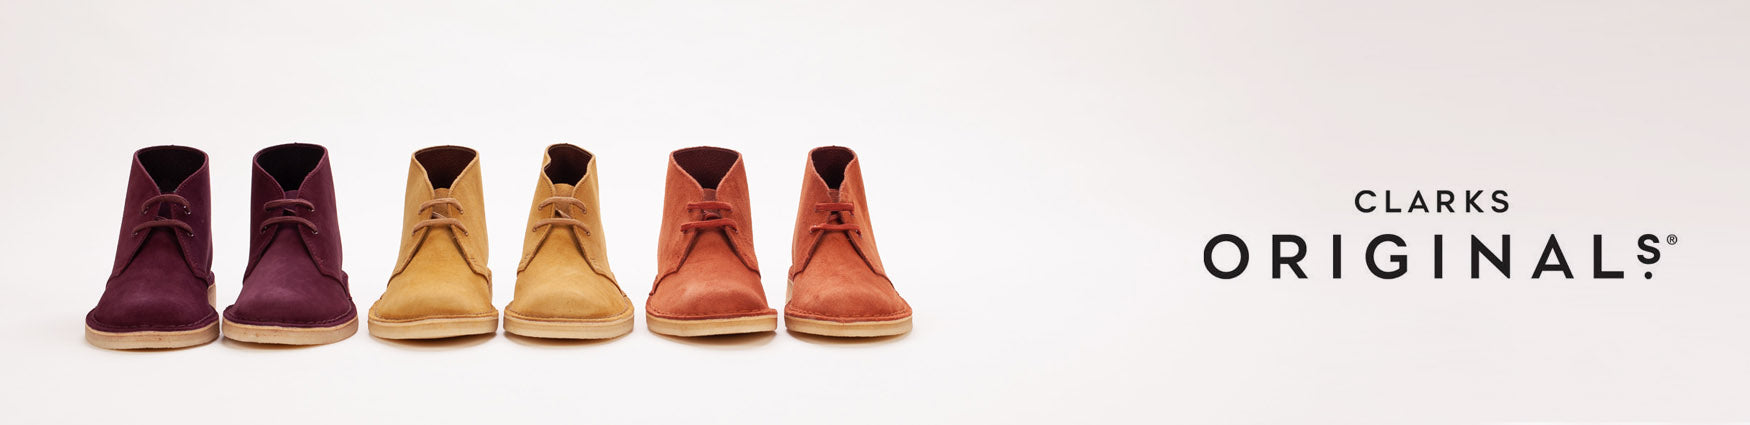 Clarks Originals Desert Boots | Shop online @ Roo's Beach UK